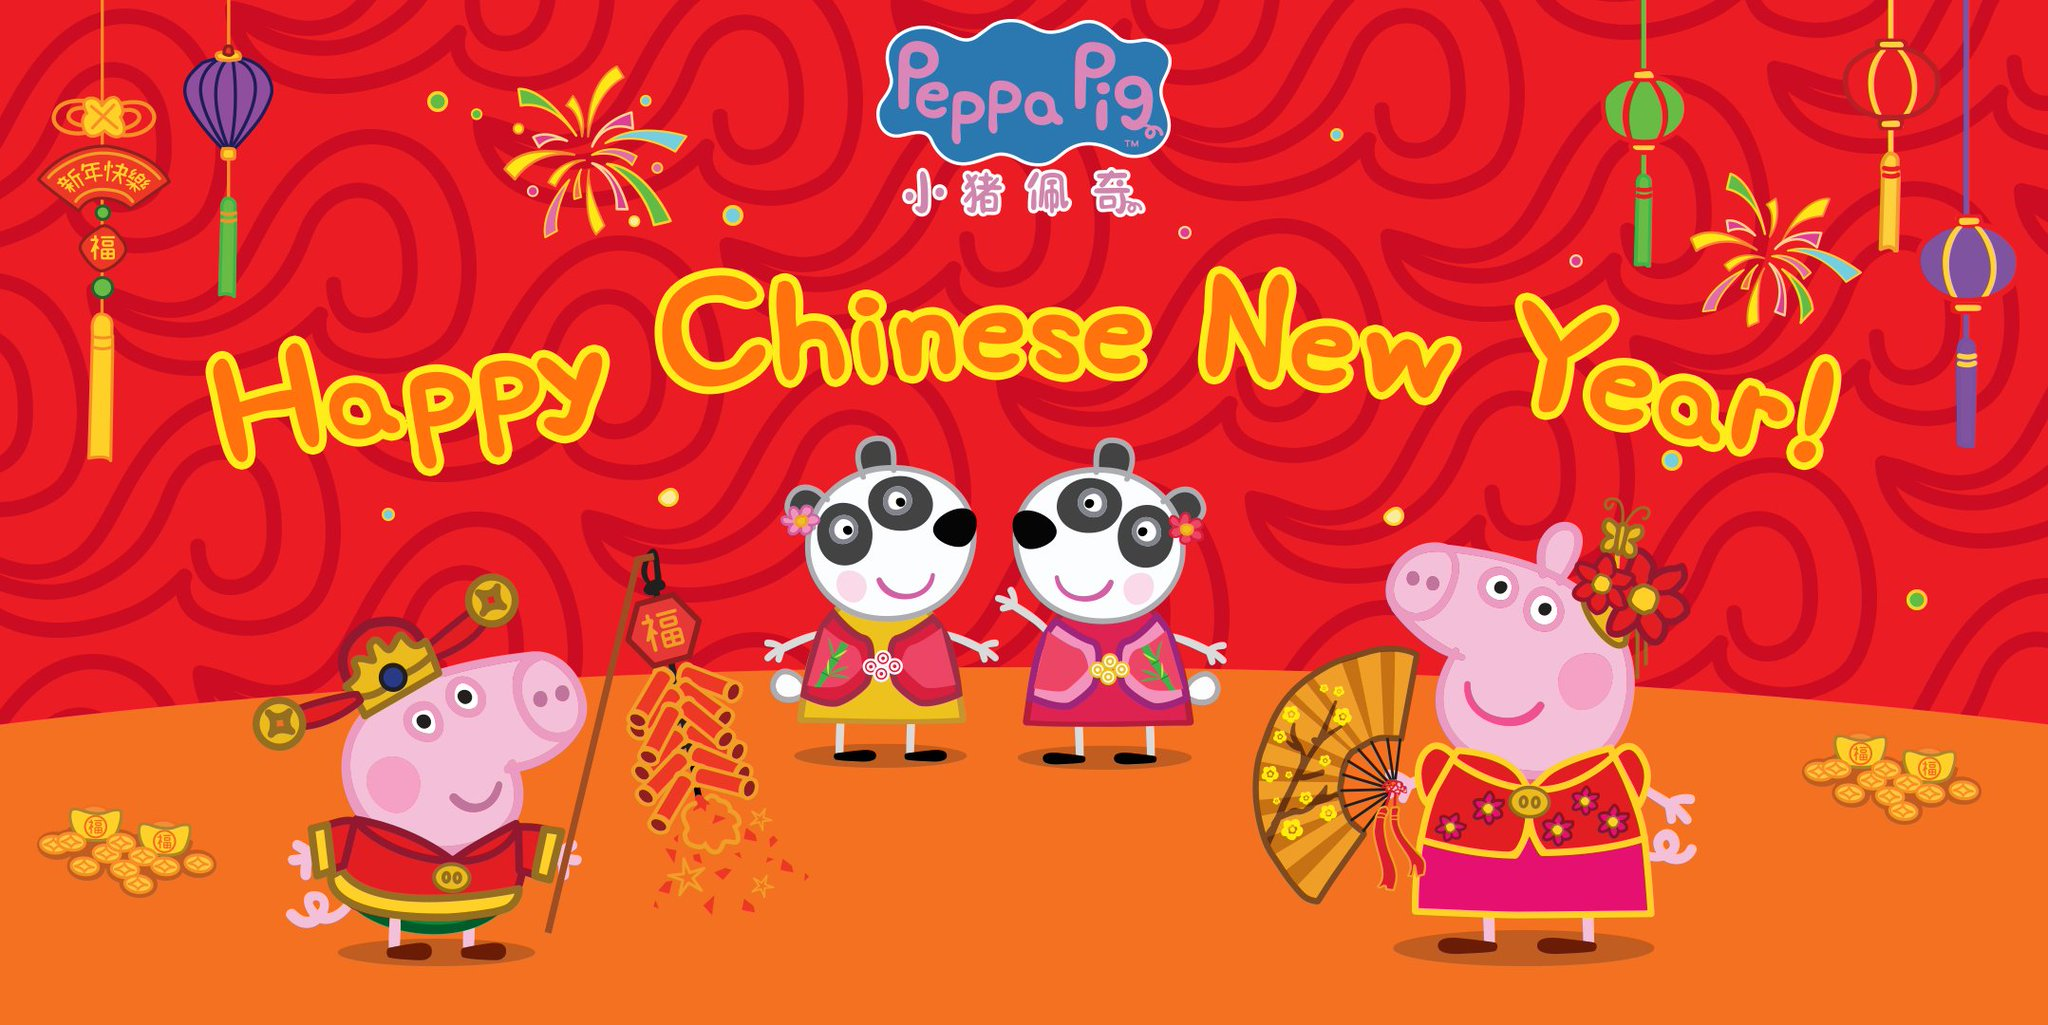 Peppa Pig Official On Twitter Happy Chinese New Year Everybody